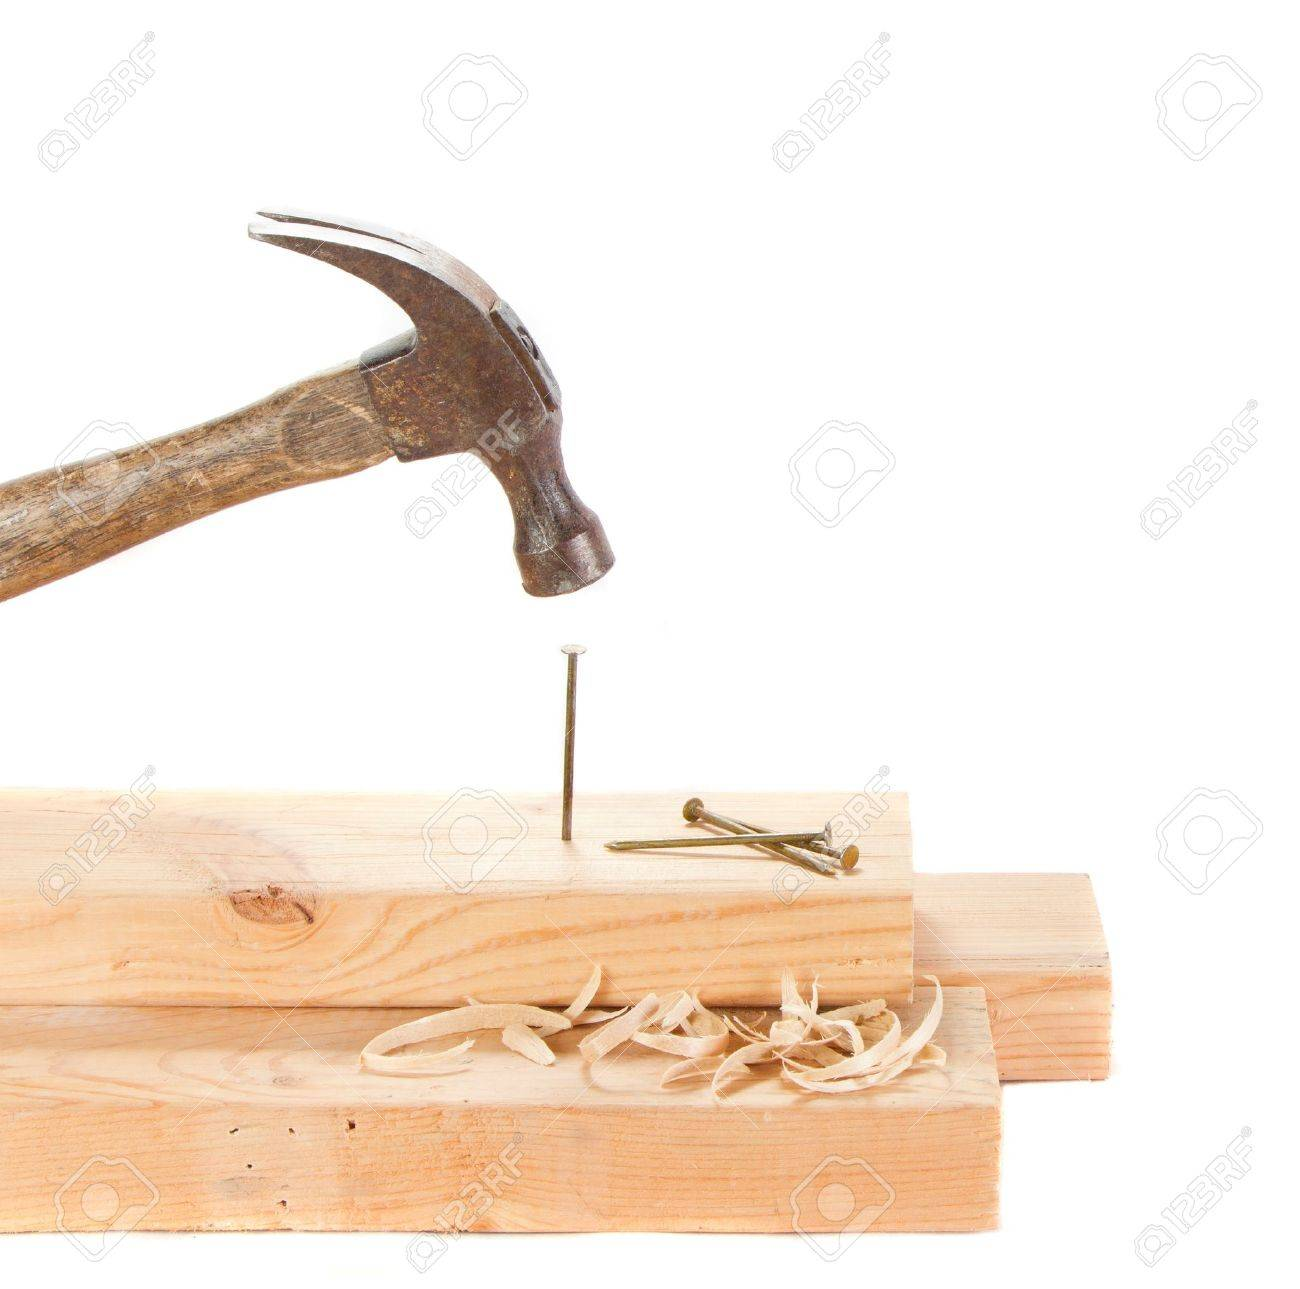 Stiking a nail with a hammer isolated on white background Stock Photo - 13497895